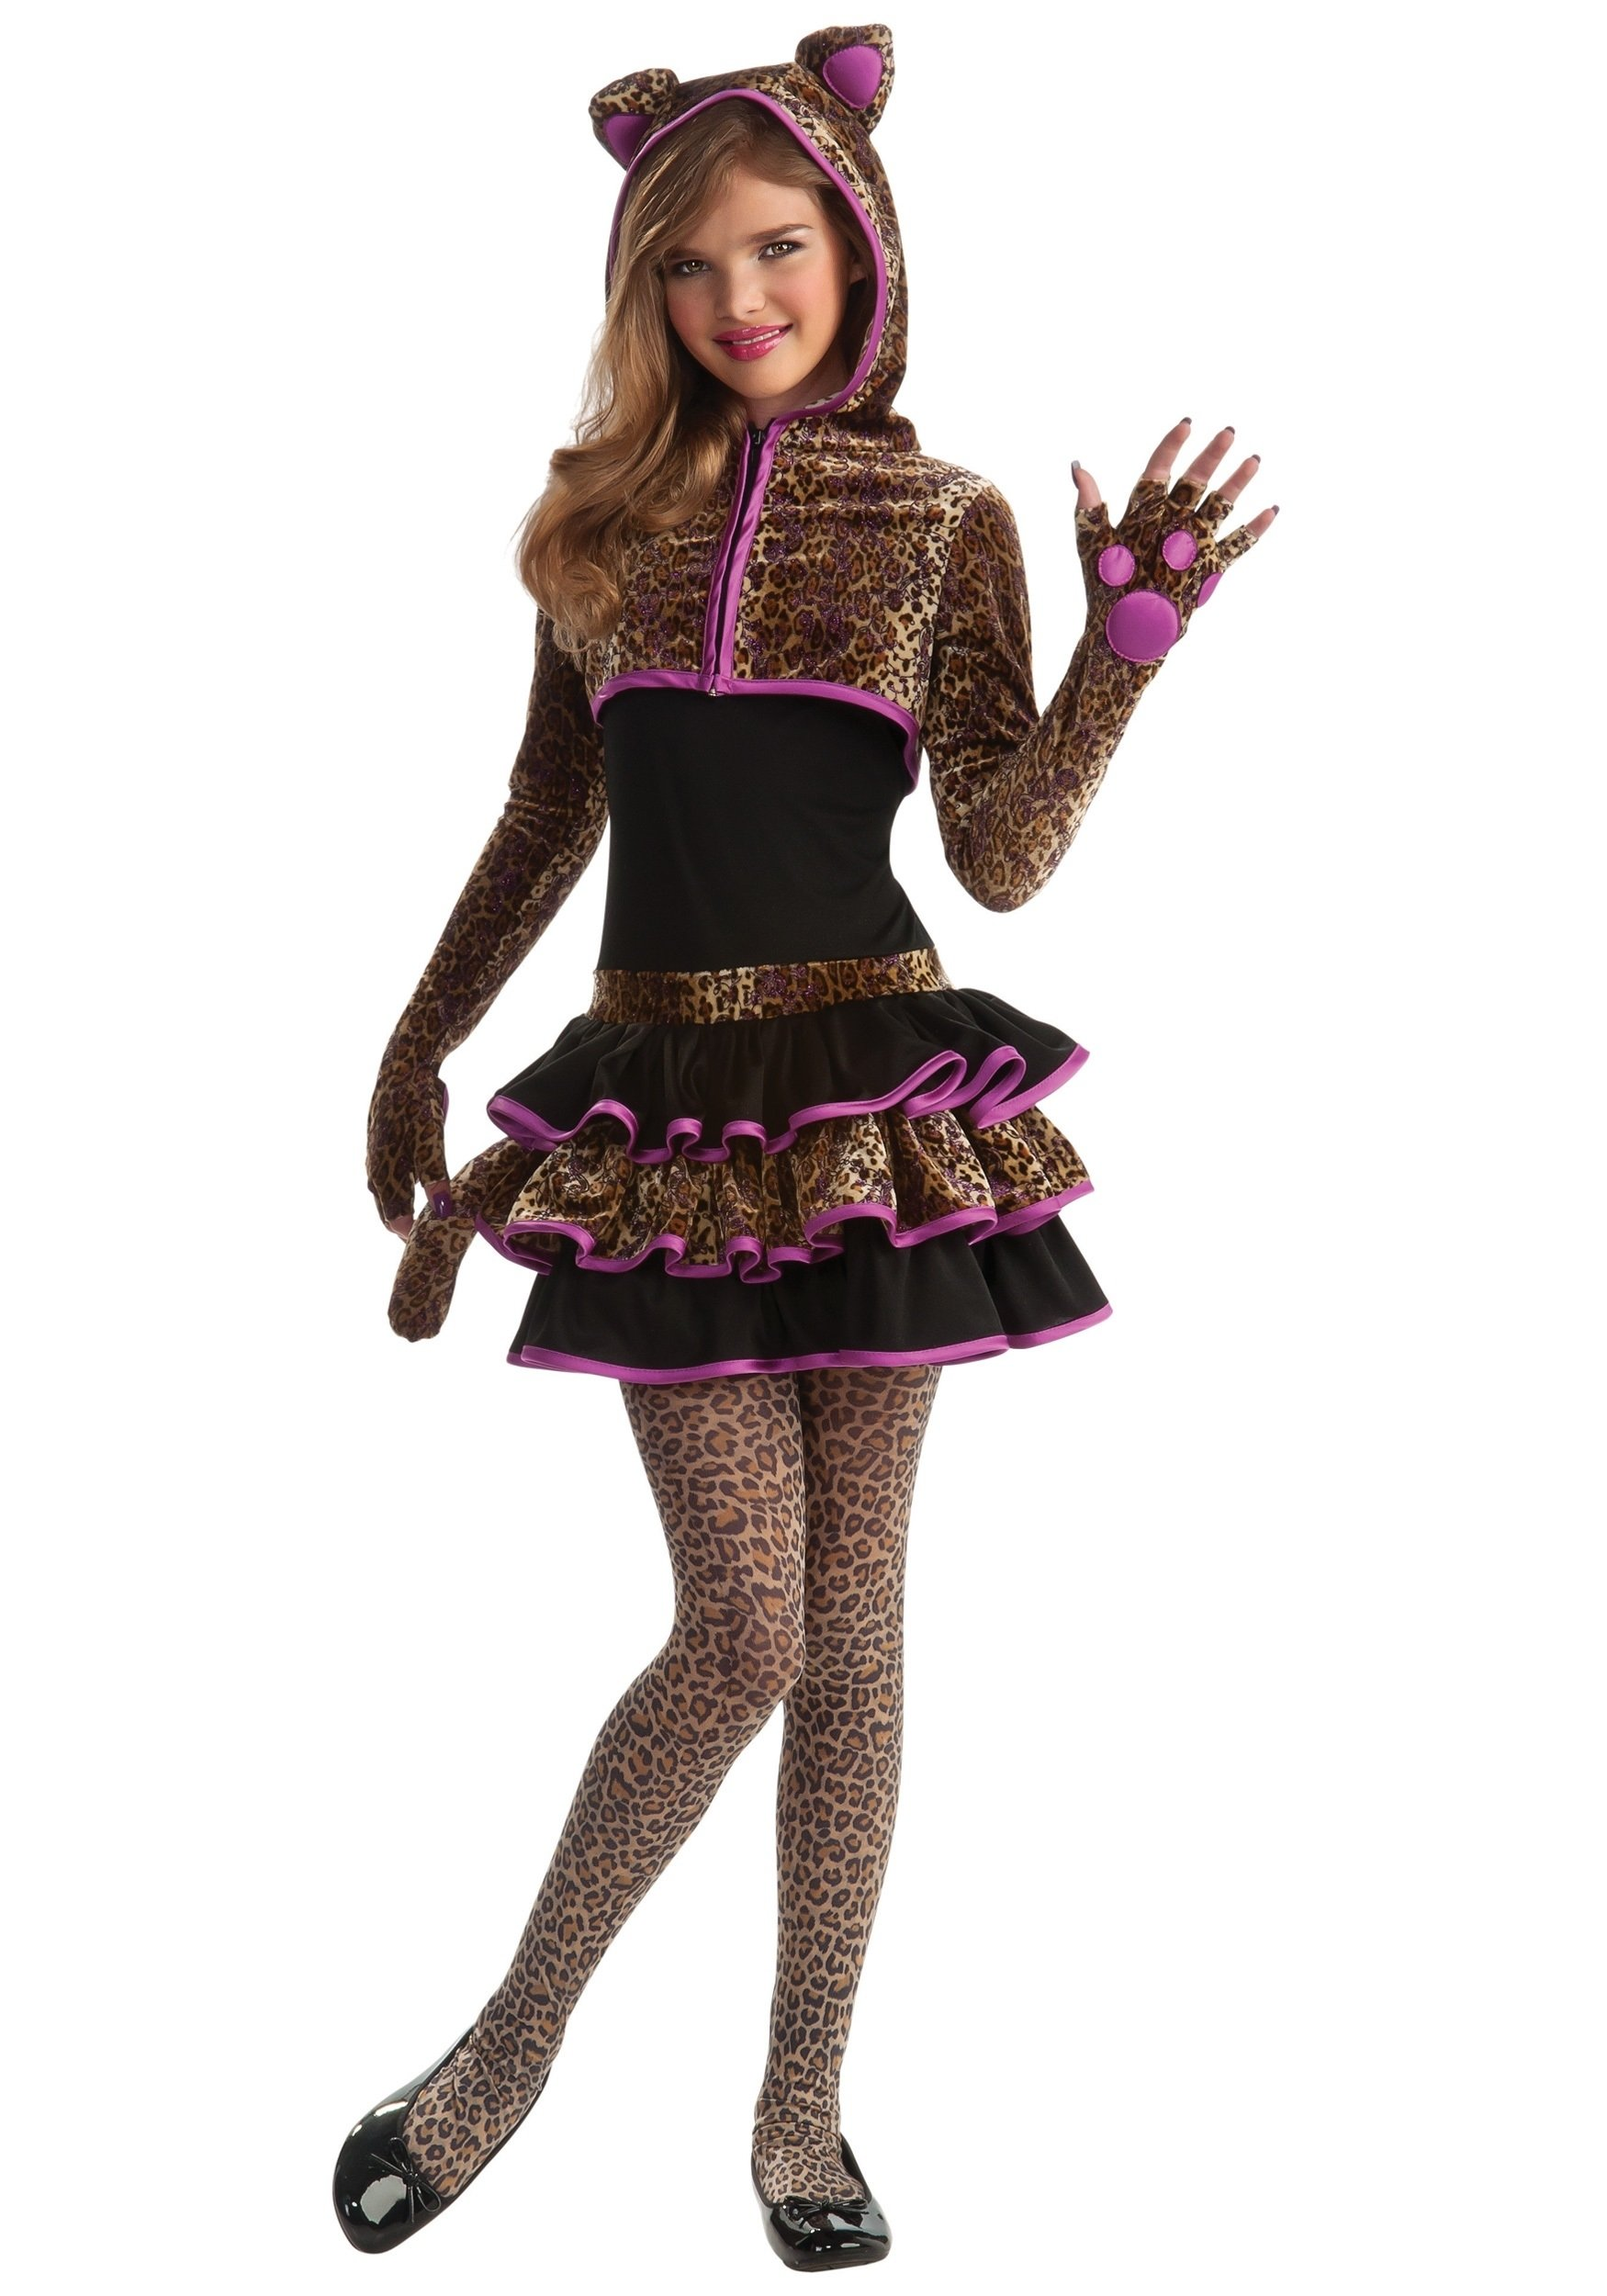 10 Stylish Costume Ideas For Tween Girls leopard tween girls costume kids animal costume ideas 2020